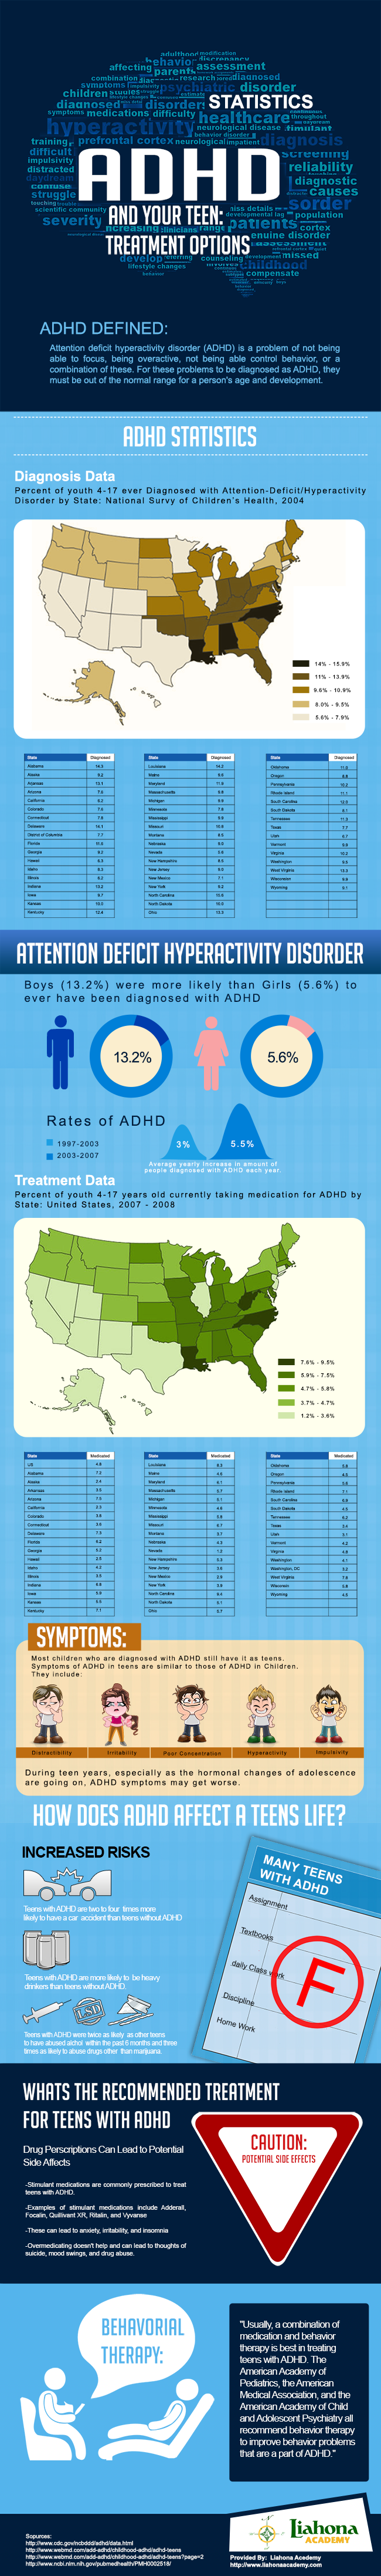 Adhd Behind Behavior >> ADHD and Your Teen Treatment Options (Infographic)